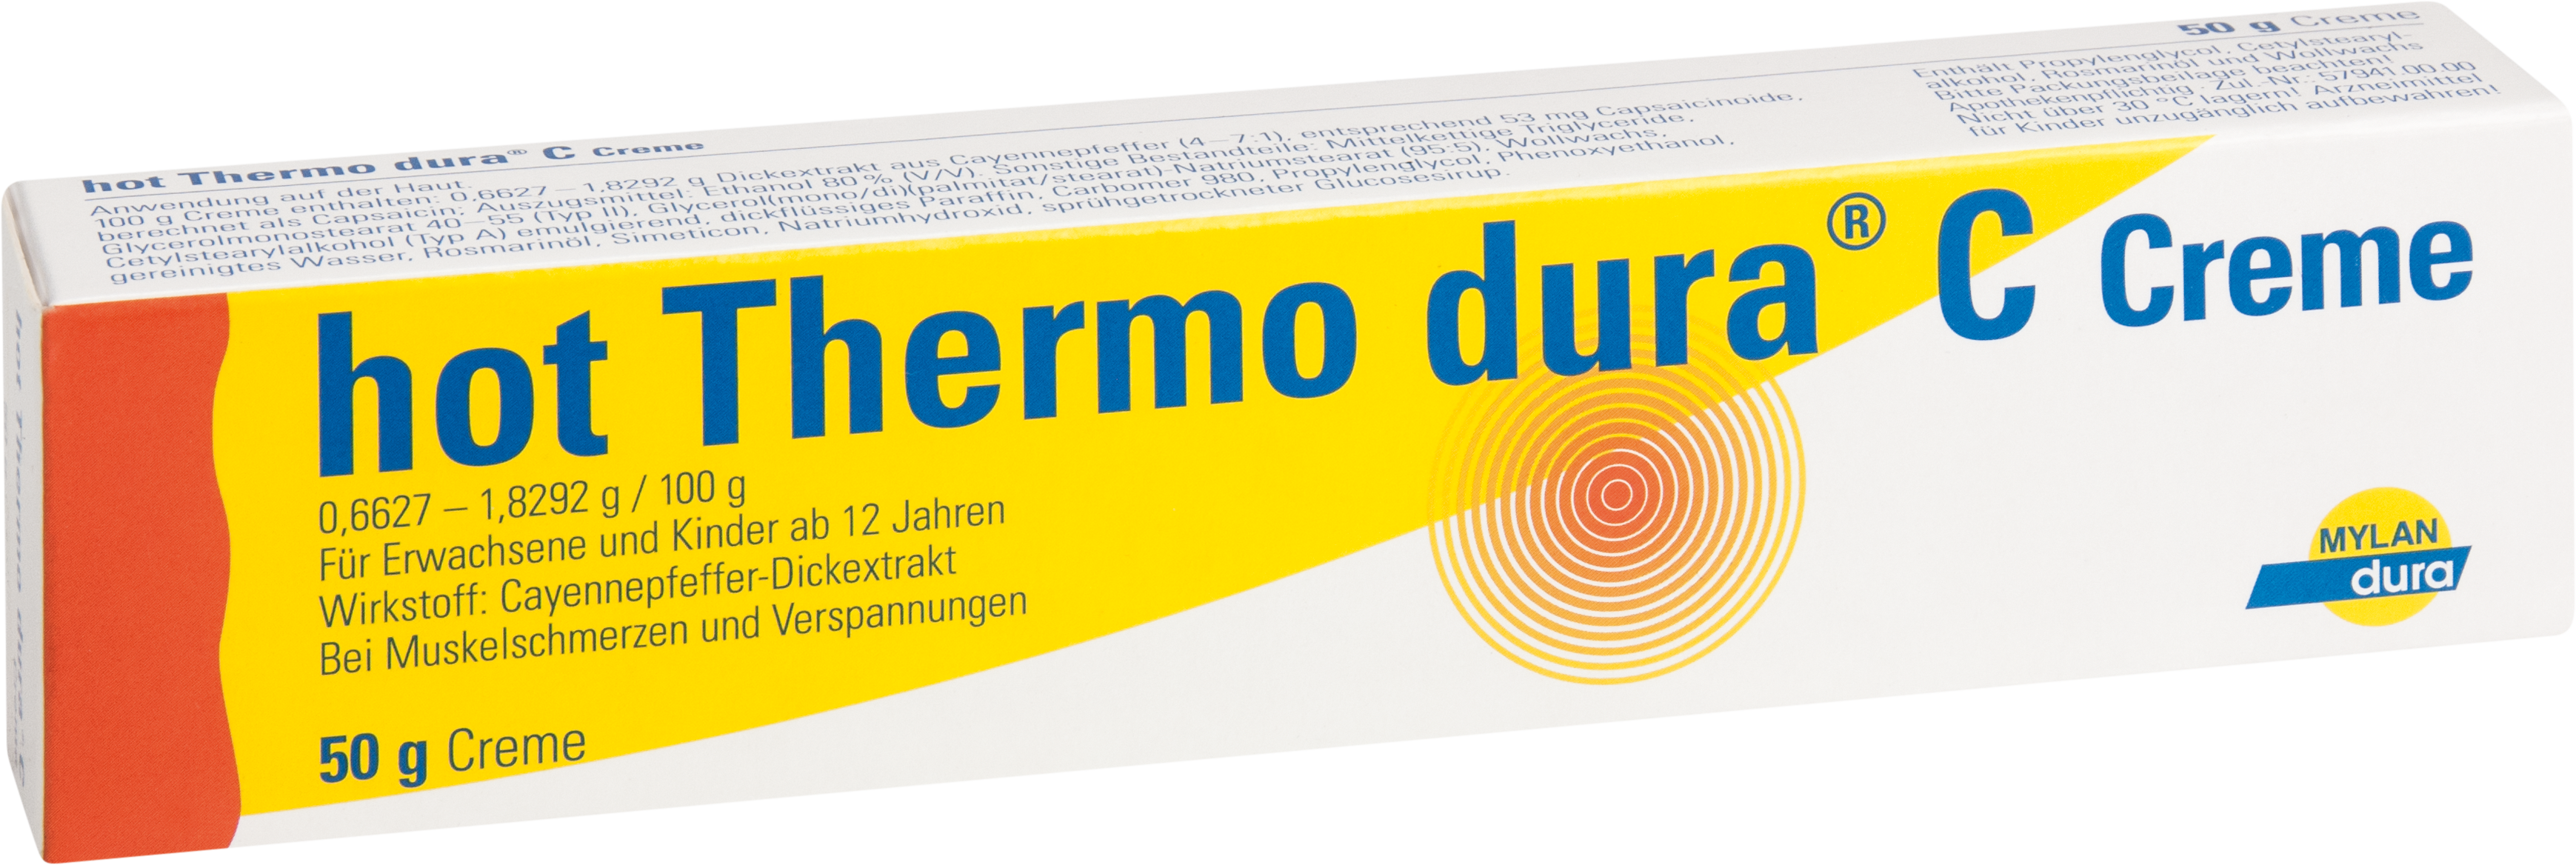 hot Thermo dura C Creme